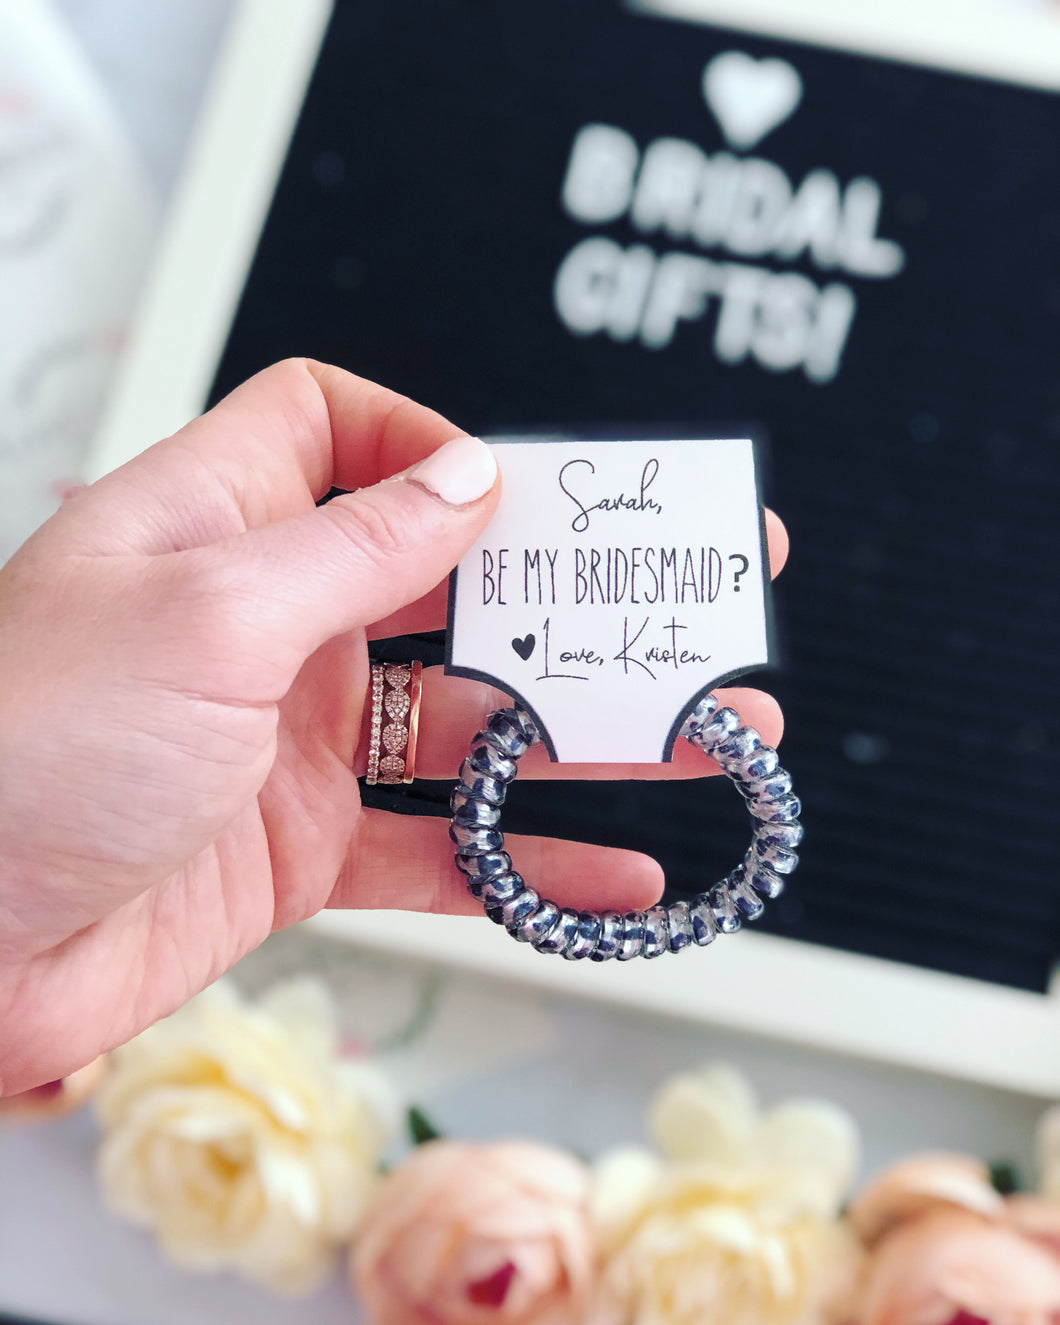 Be my Bridesmaid? Hair tie gift!